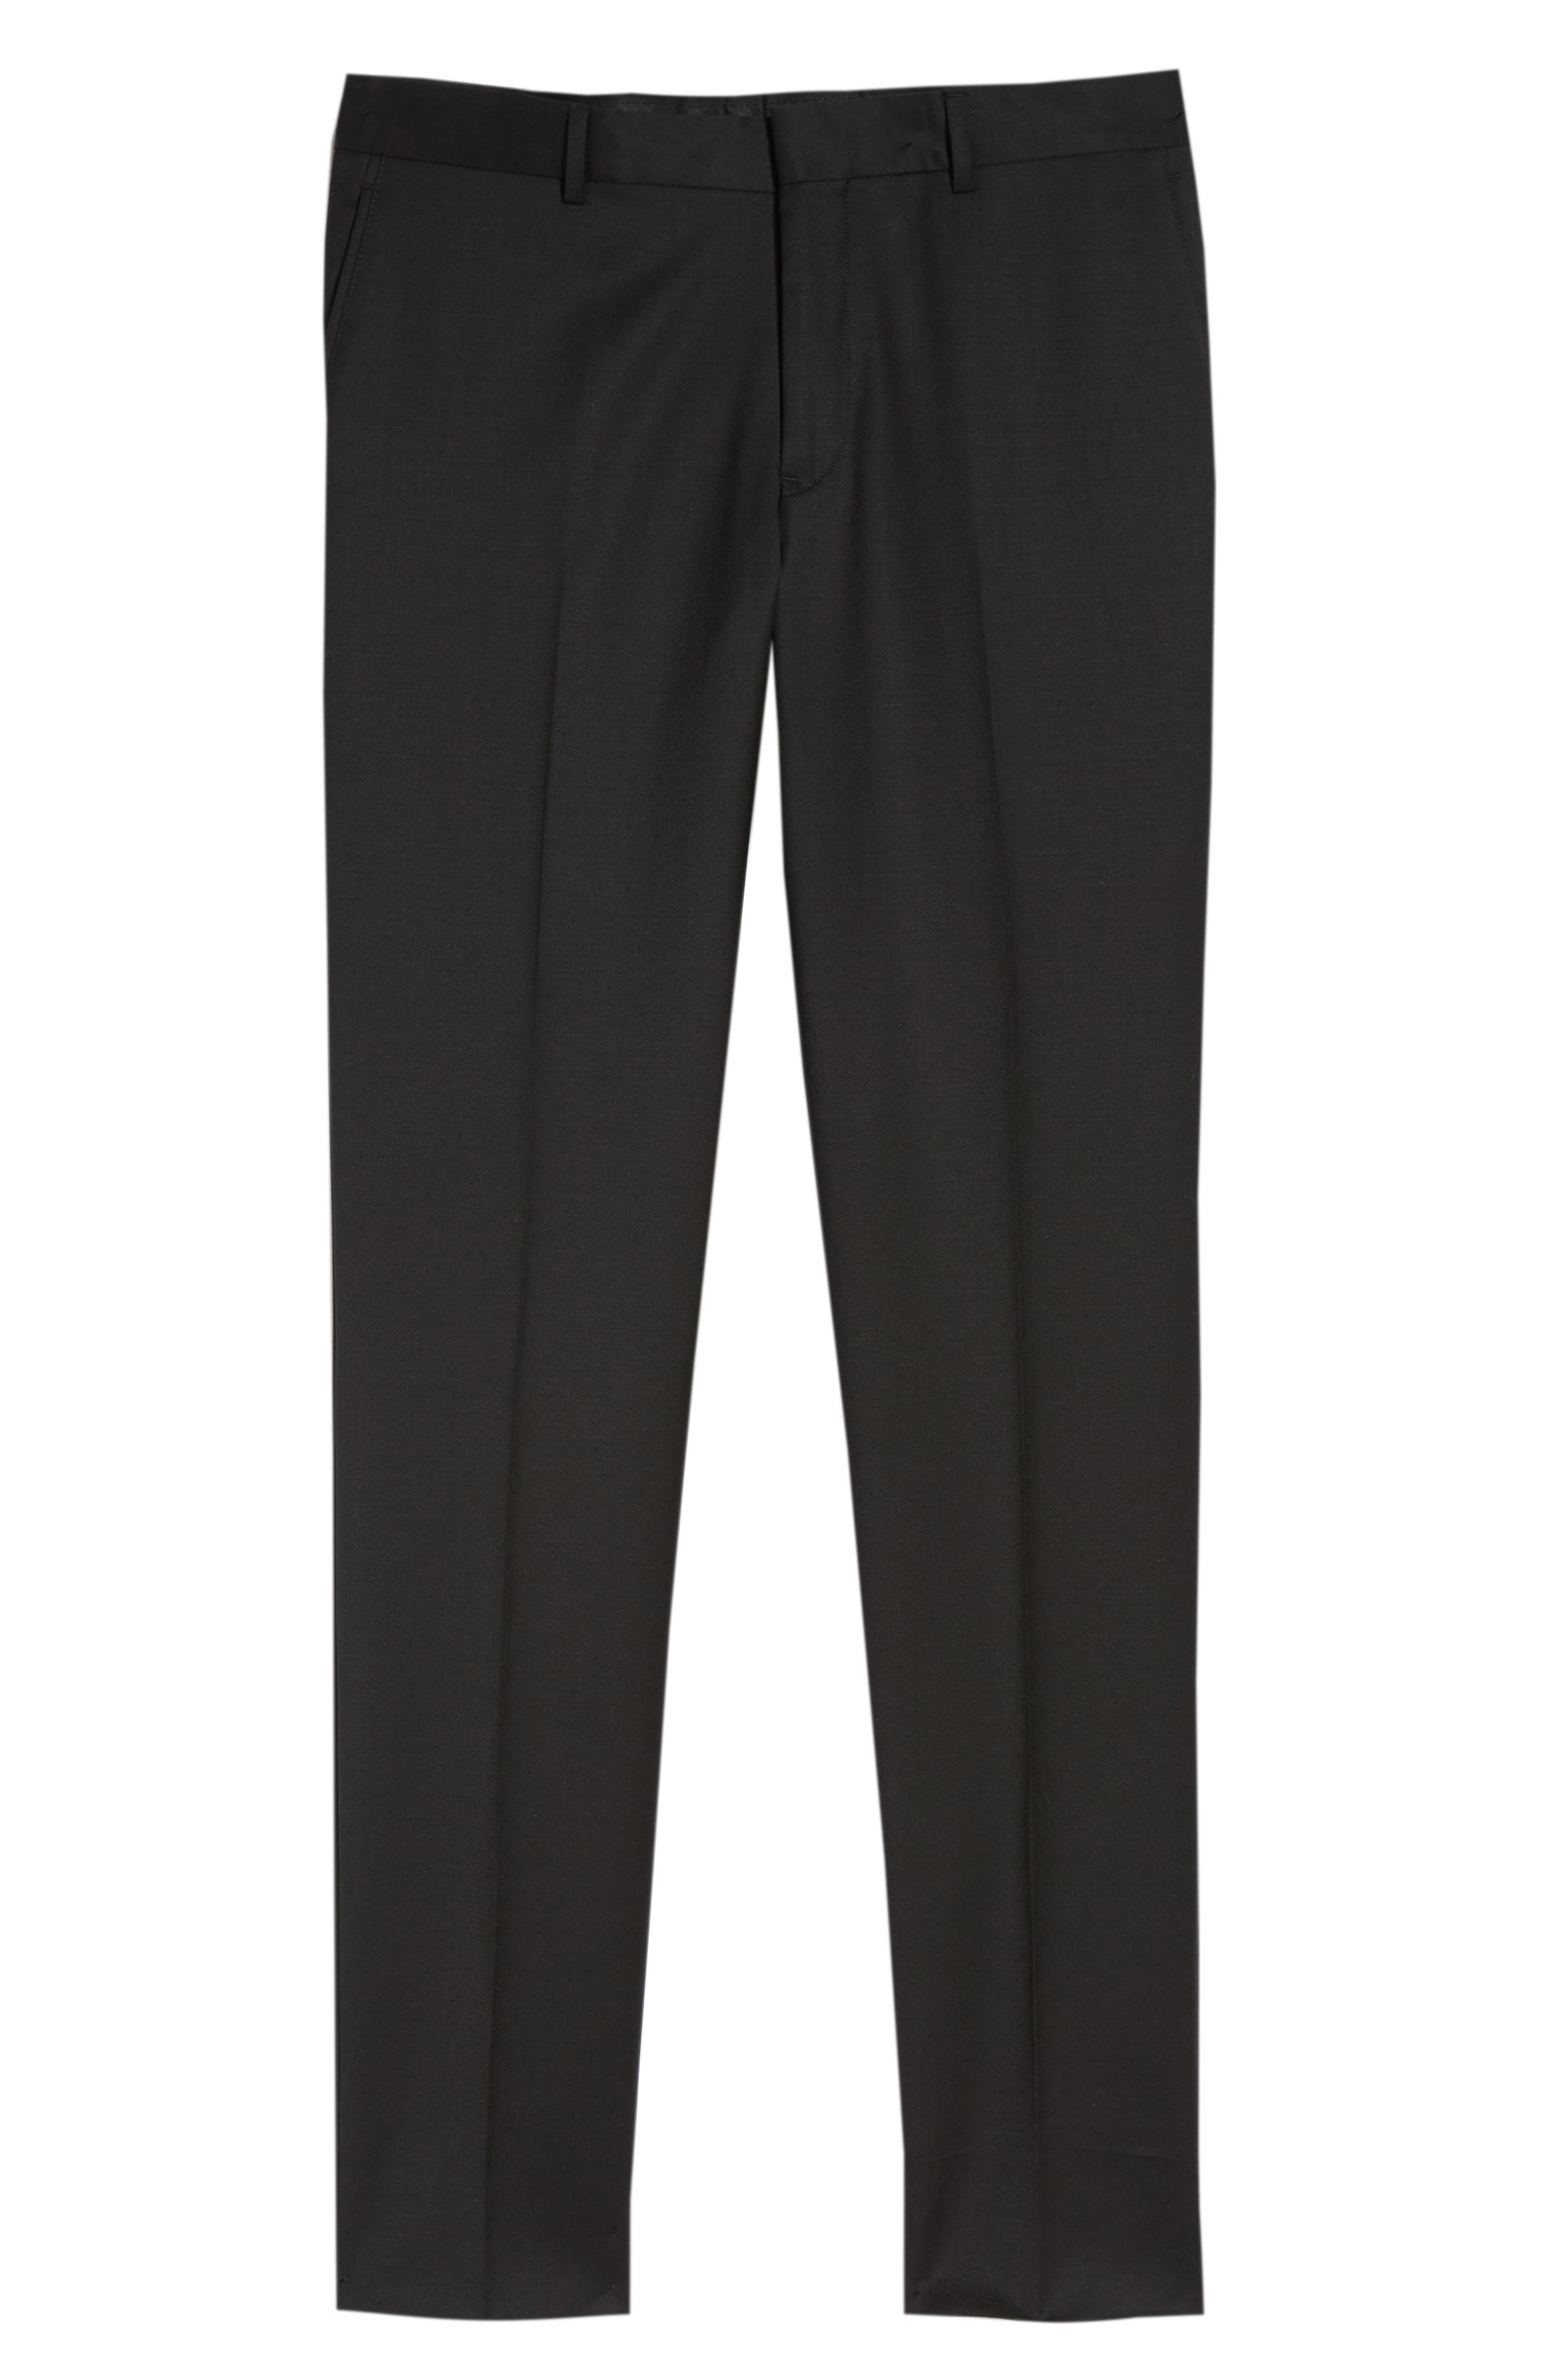 Flat Front Tech-Smart Extra Trim Trousers,                             Alternate thumbnail 3, color,                             Black